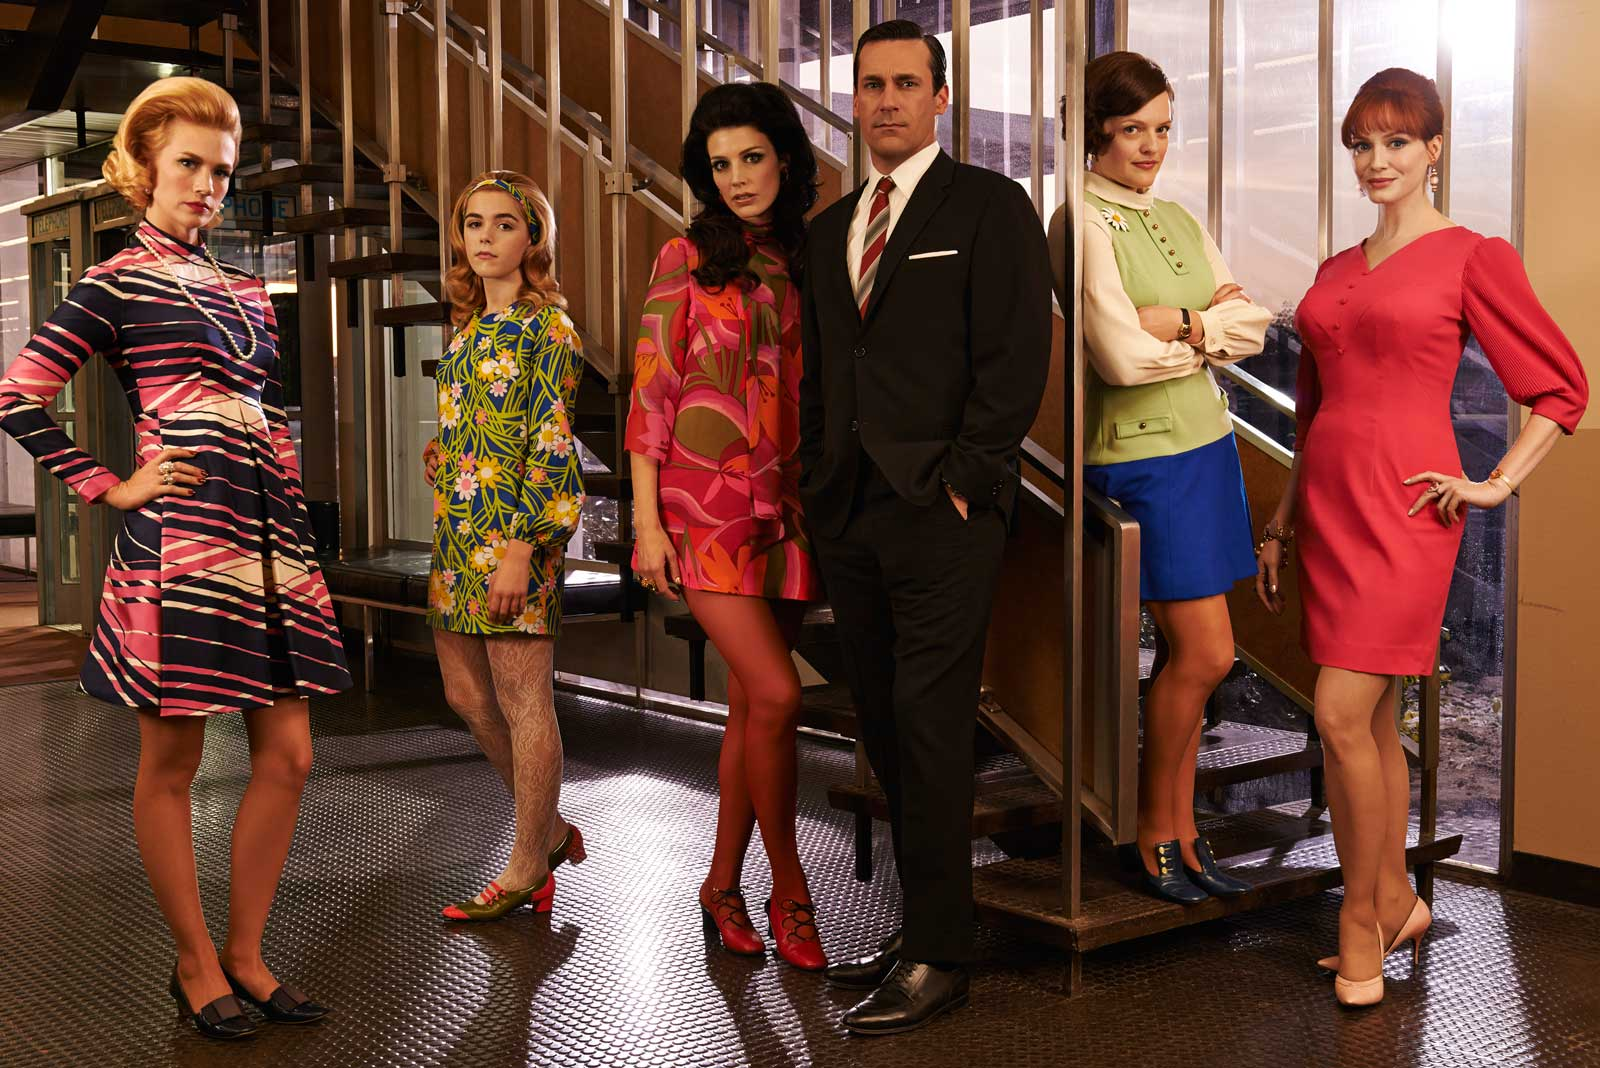 Mad Men | Summary, Characters, & Facts | Britannica